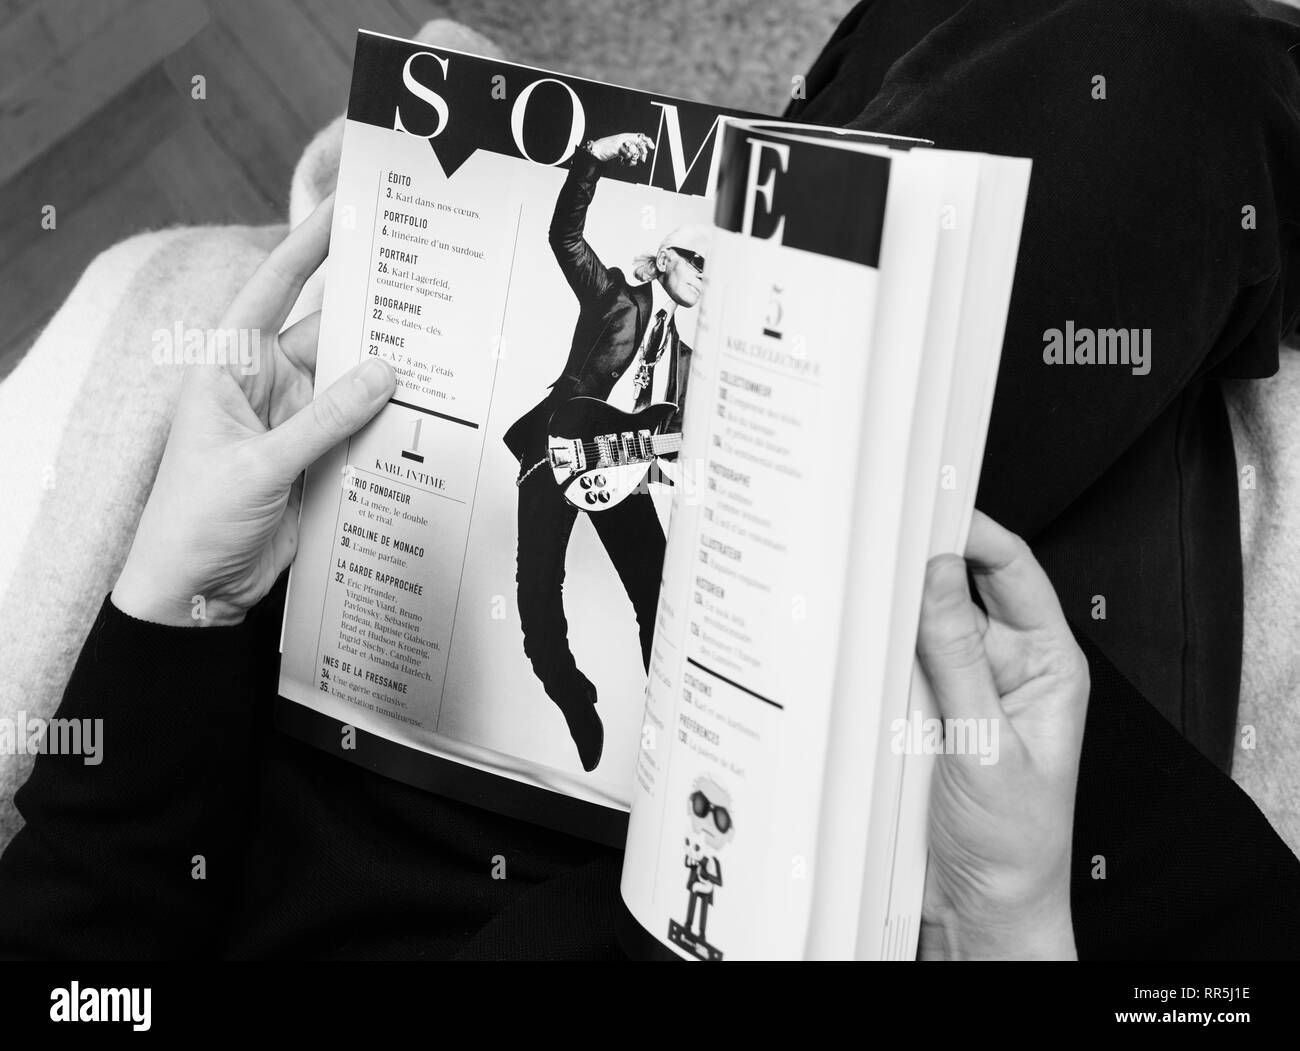 Paris France Feb 23 2019 Woman Reading French Magazine Covering Karl Lagerfeld Death Iconic Fashion Designer Died Aged 85 Summary With Karl Playing Electric Guitar Black And White Stock Photo 237995786 Alamy